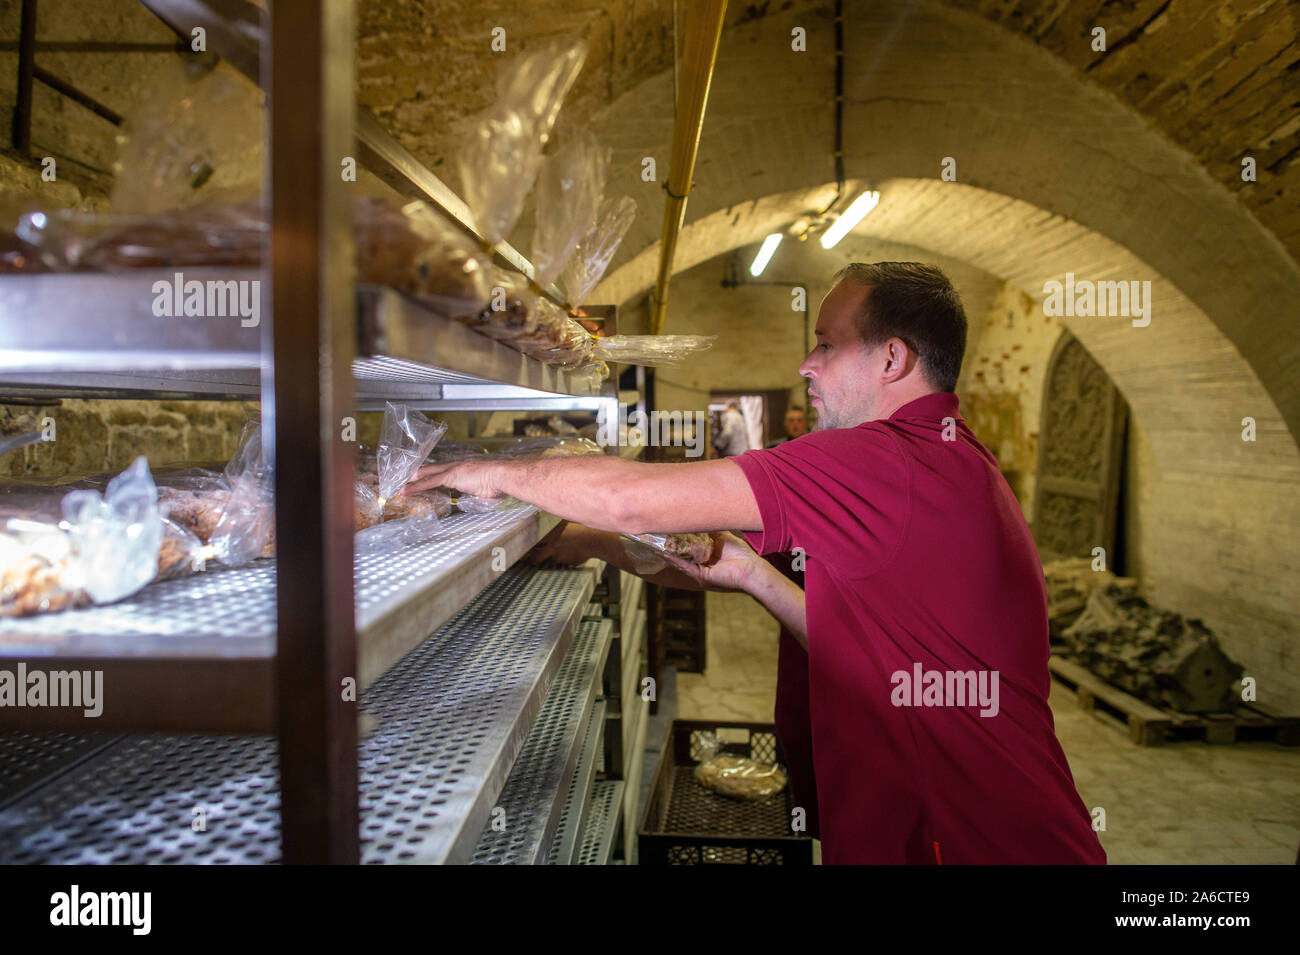 24 October 2019, Saxony-Anhalt, Halberstadt: Mathias Hlady, baker at the Halberstädter Bäcker und Konditoren, puts fresh Stollen into a steel shelf in the Remterkeller of the cathedral. The bread-like cake covered with icing sugar is to be stored in the Remter cellar of the cathedral in the coming weeks and matured in the constant climate of the vault. The Halberstadt cathedral gallery will be cut on 30 November 2019 in the cathedral during a devotion. Photo: Klaus-Dietmar Gabbert/dpa-Zentralbild/ZB Stock Photo